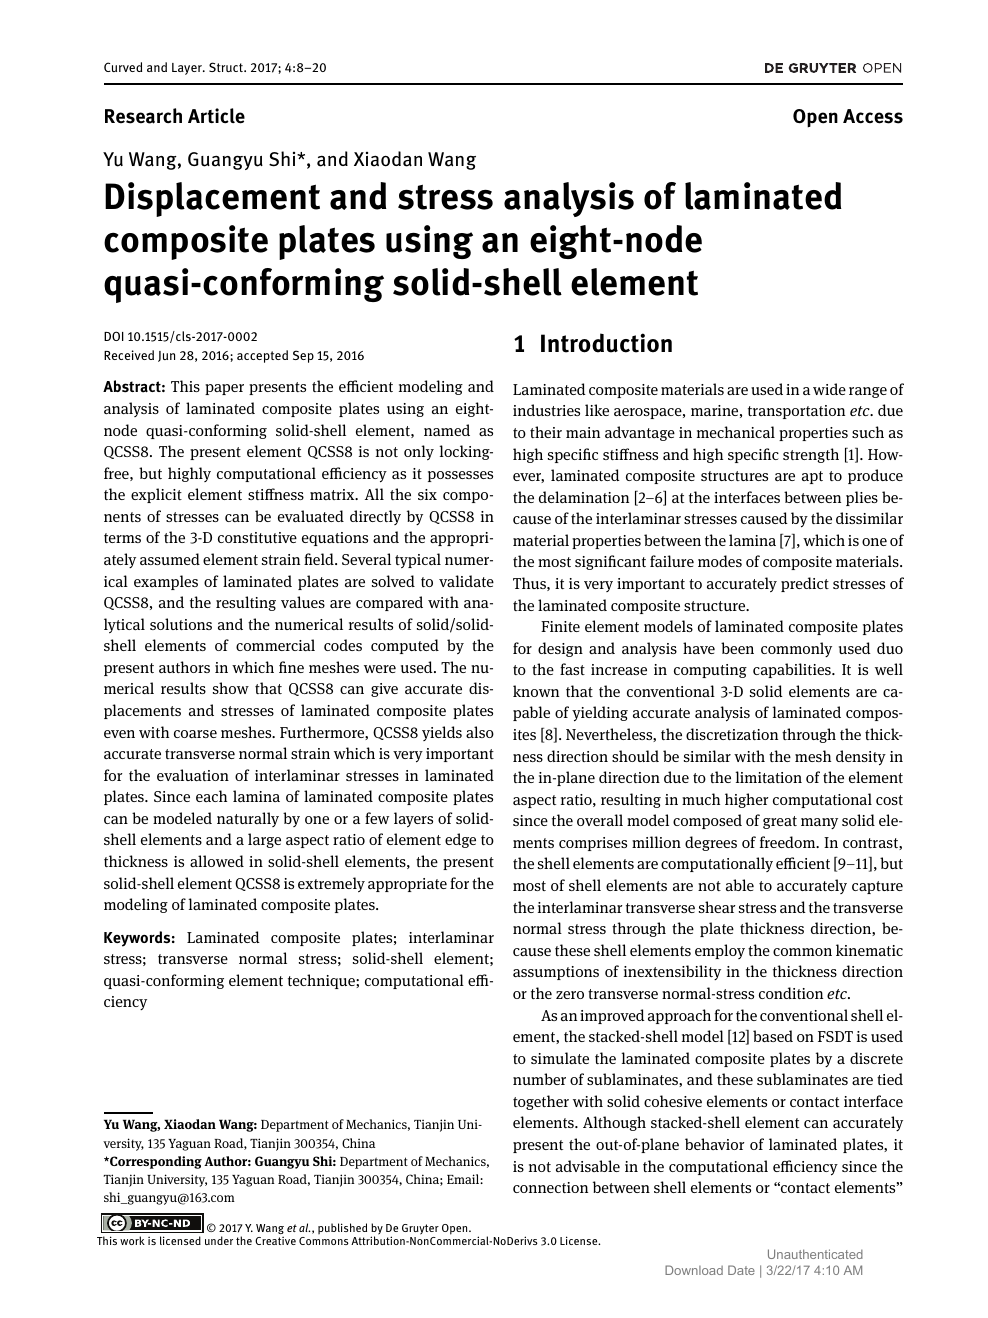 Displacement and stress analysis of laminated composite plates using